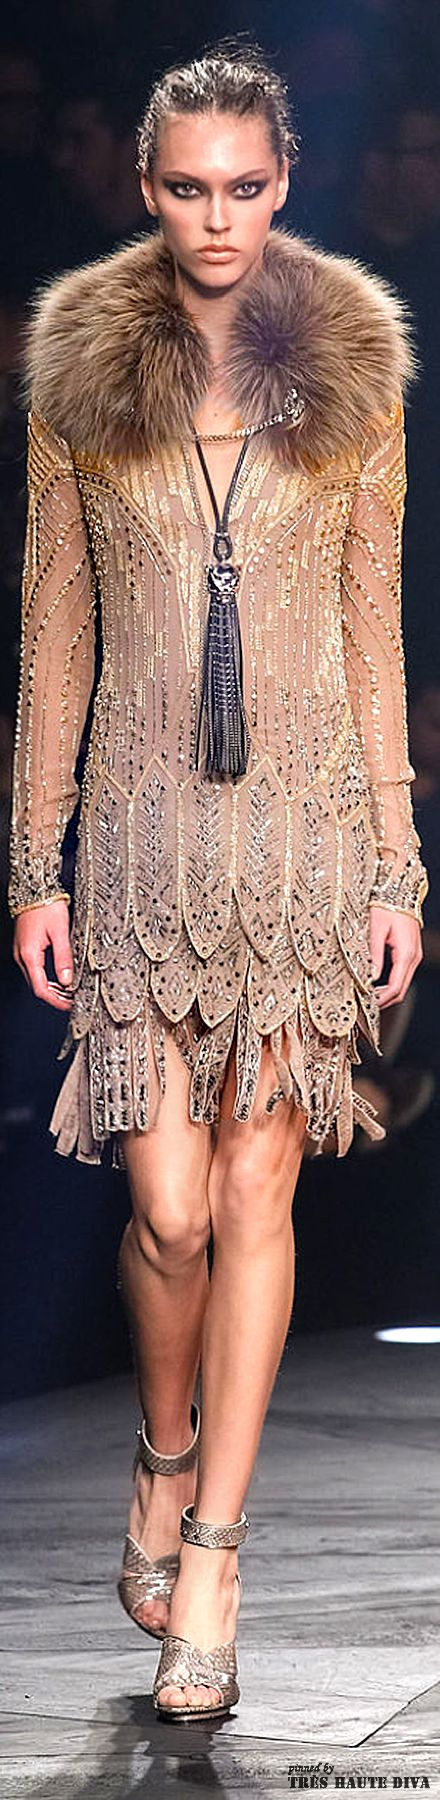 7c4930a5f344ef56dfd8b351f838c077--milan-fashion-weeks-london-fashion Collection Roberto Cavalli  : Roberto #Cavalli Automne / Hiver 2014 RTW